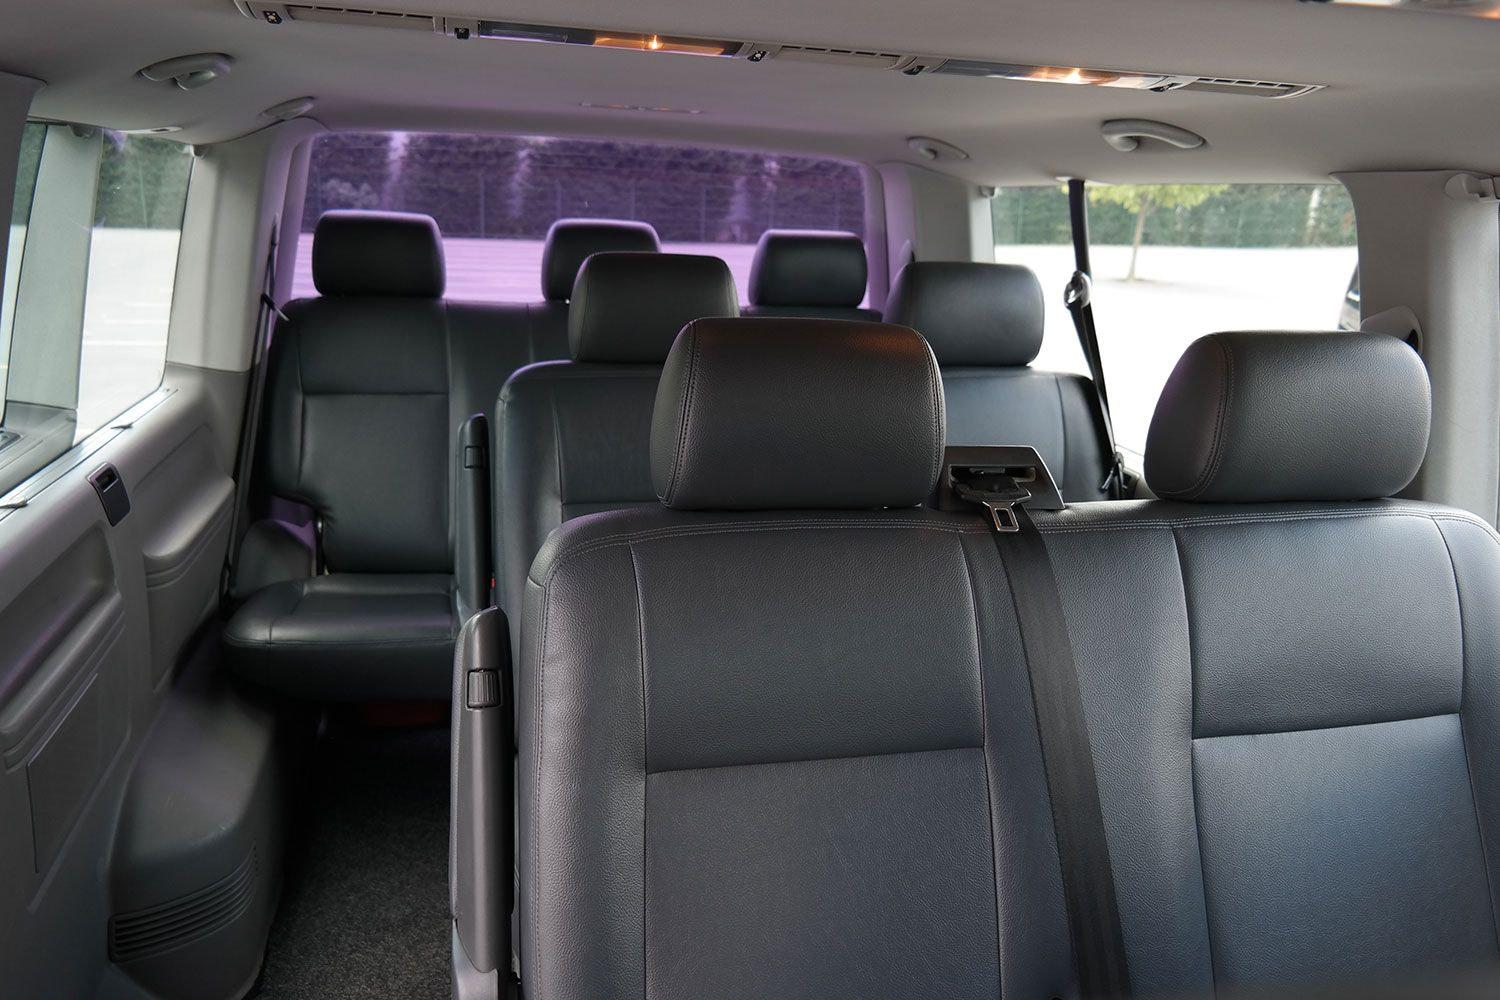 big_7_vw-02 Vw Caravella 7 seats